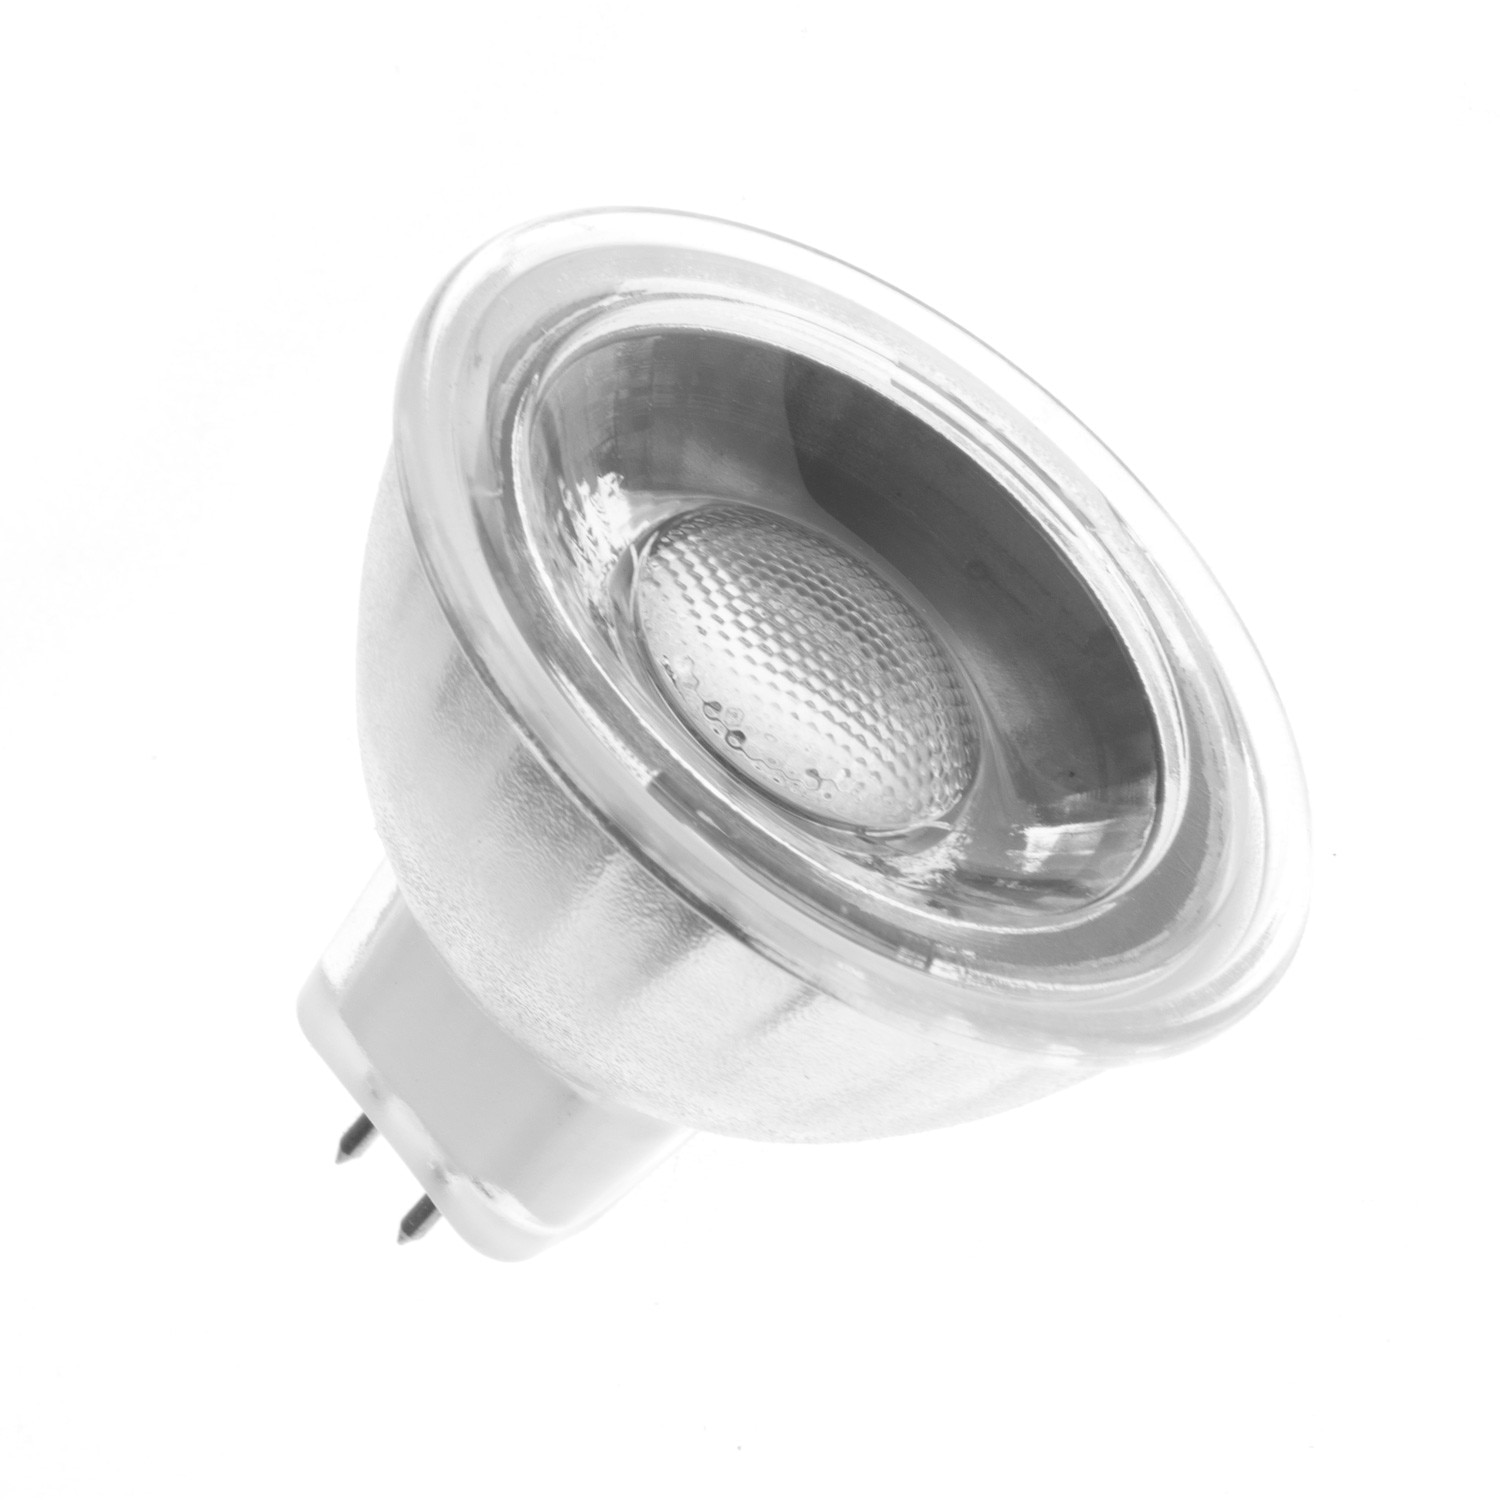 Lampara Led 12v Led Lampe Gu5 3 Mr16 Cob 45º 5w 220v Glas